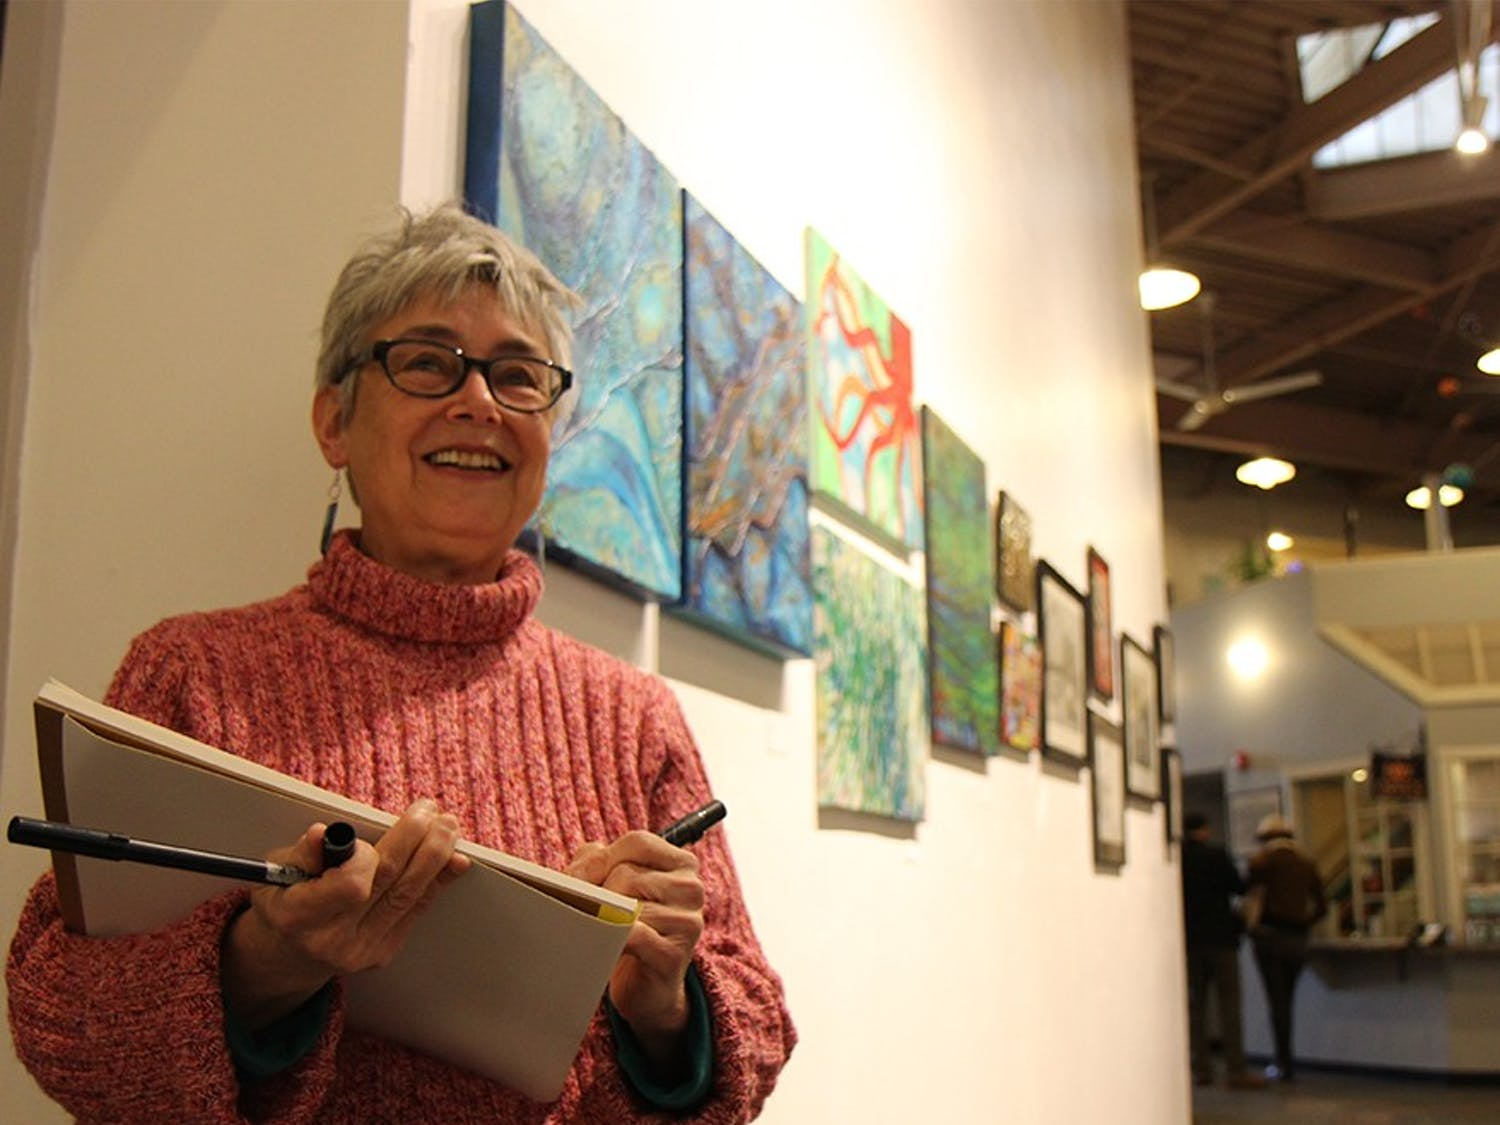 Maja K., a resident of Chatham County, creates a sketch of the visitors at the ArtsCenter's Annual Student Exhibit, where some of her own work is being displayed. She is a member of the Triangle Sketch Crawl, a group of local sketchers of all skill levels who explore the Triangle area through their art.